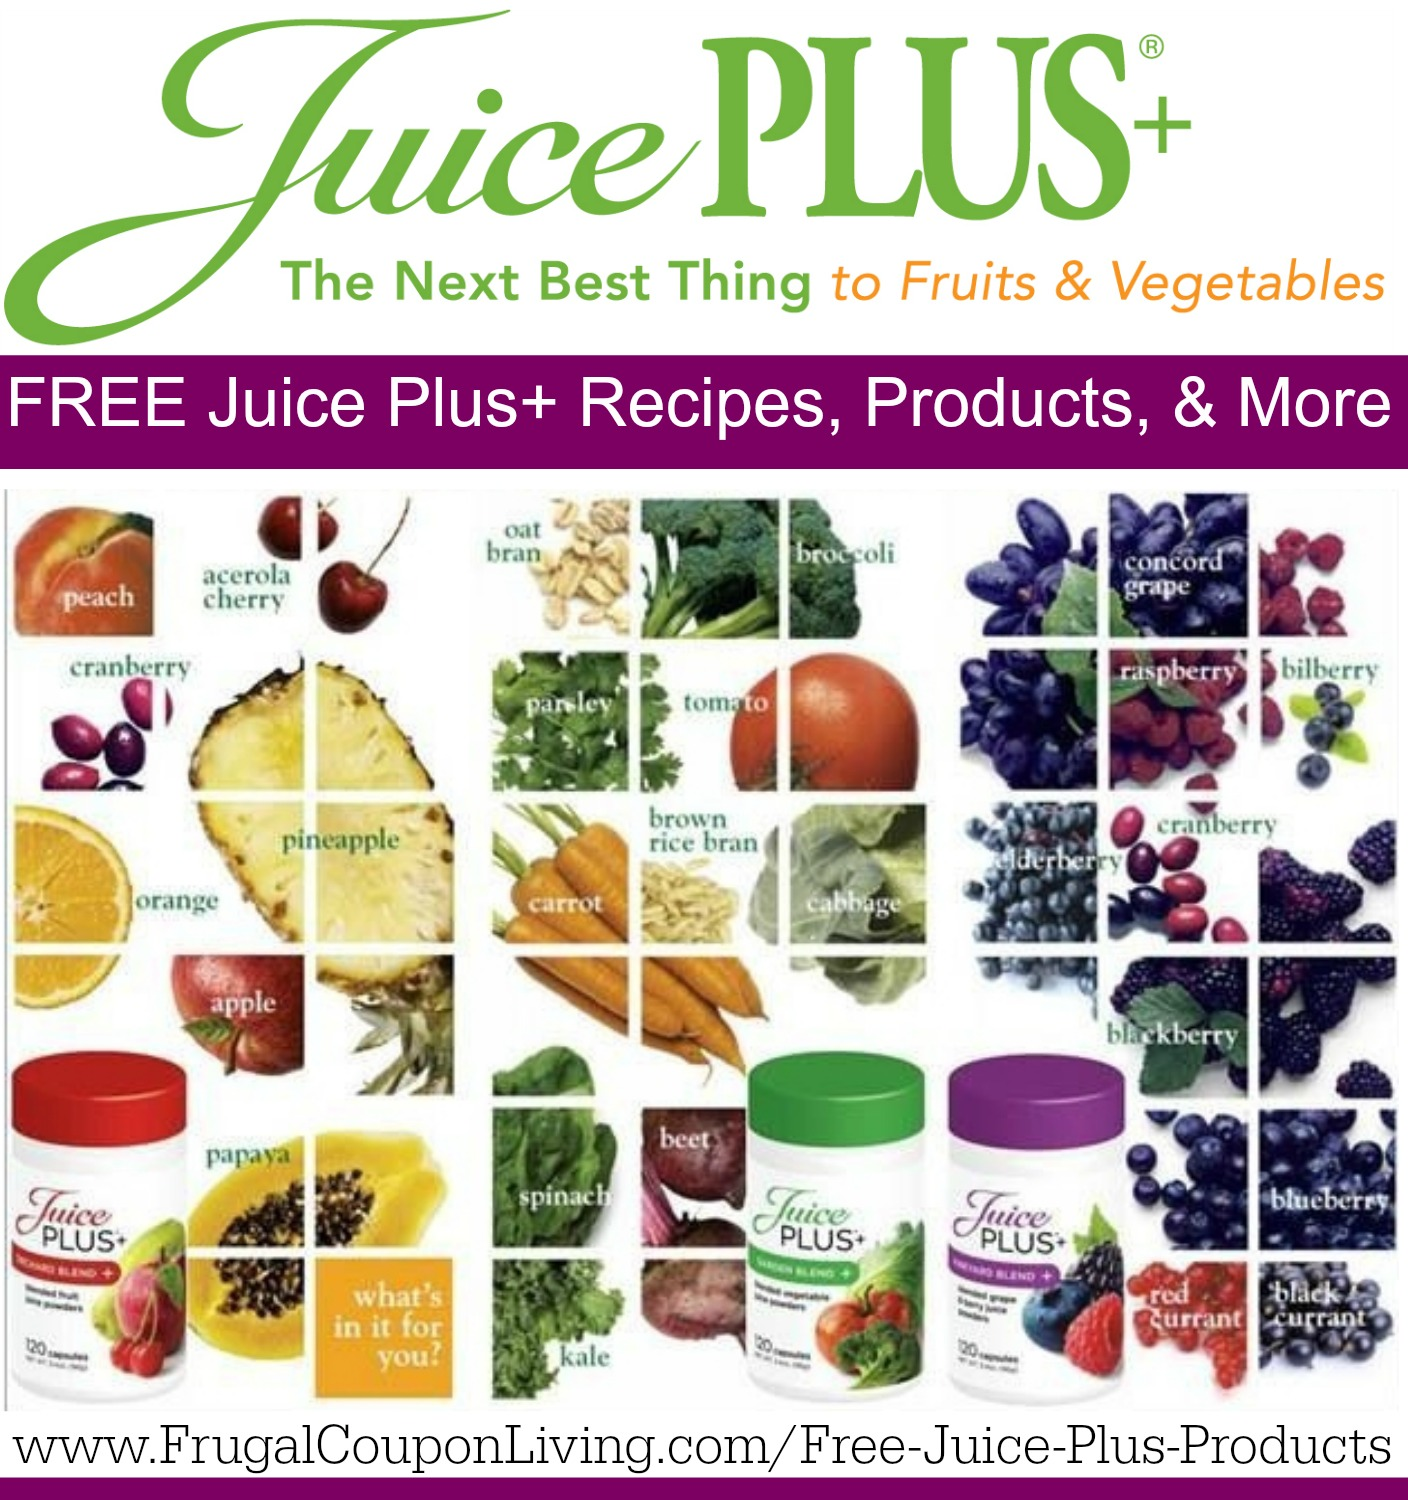 In other words, you can find almost all available offers of Juice Plus at one stop. Till now, we've served millions of customers and helped them save up to billions of dollars. Just enjoy shopping and leave the work of finding discounts, coupon codes, promo codes, promotions and deals to AnyCodes.